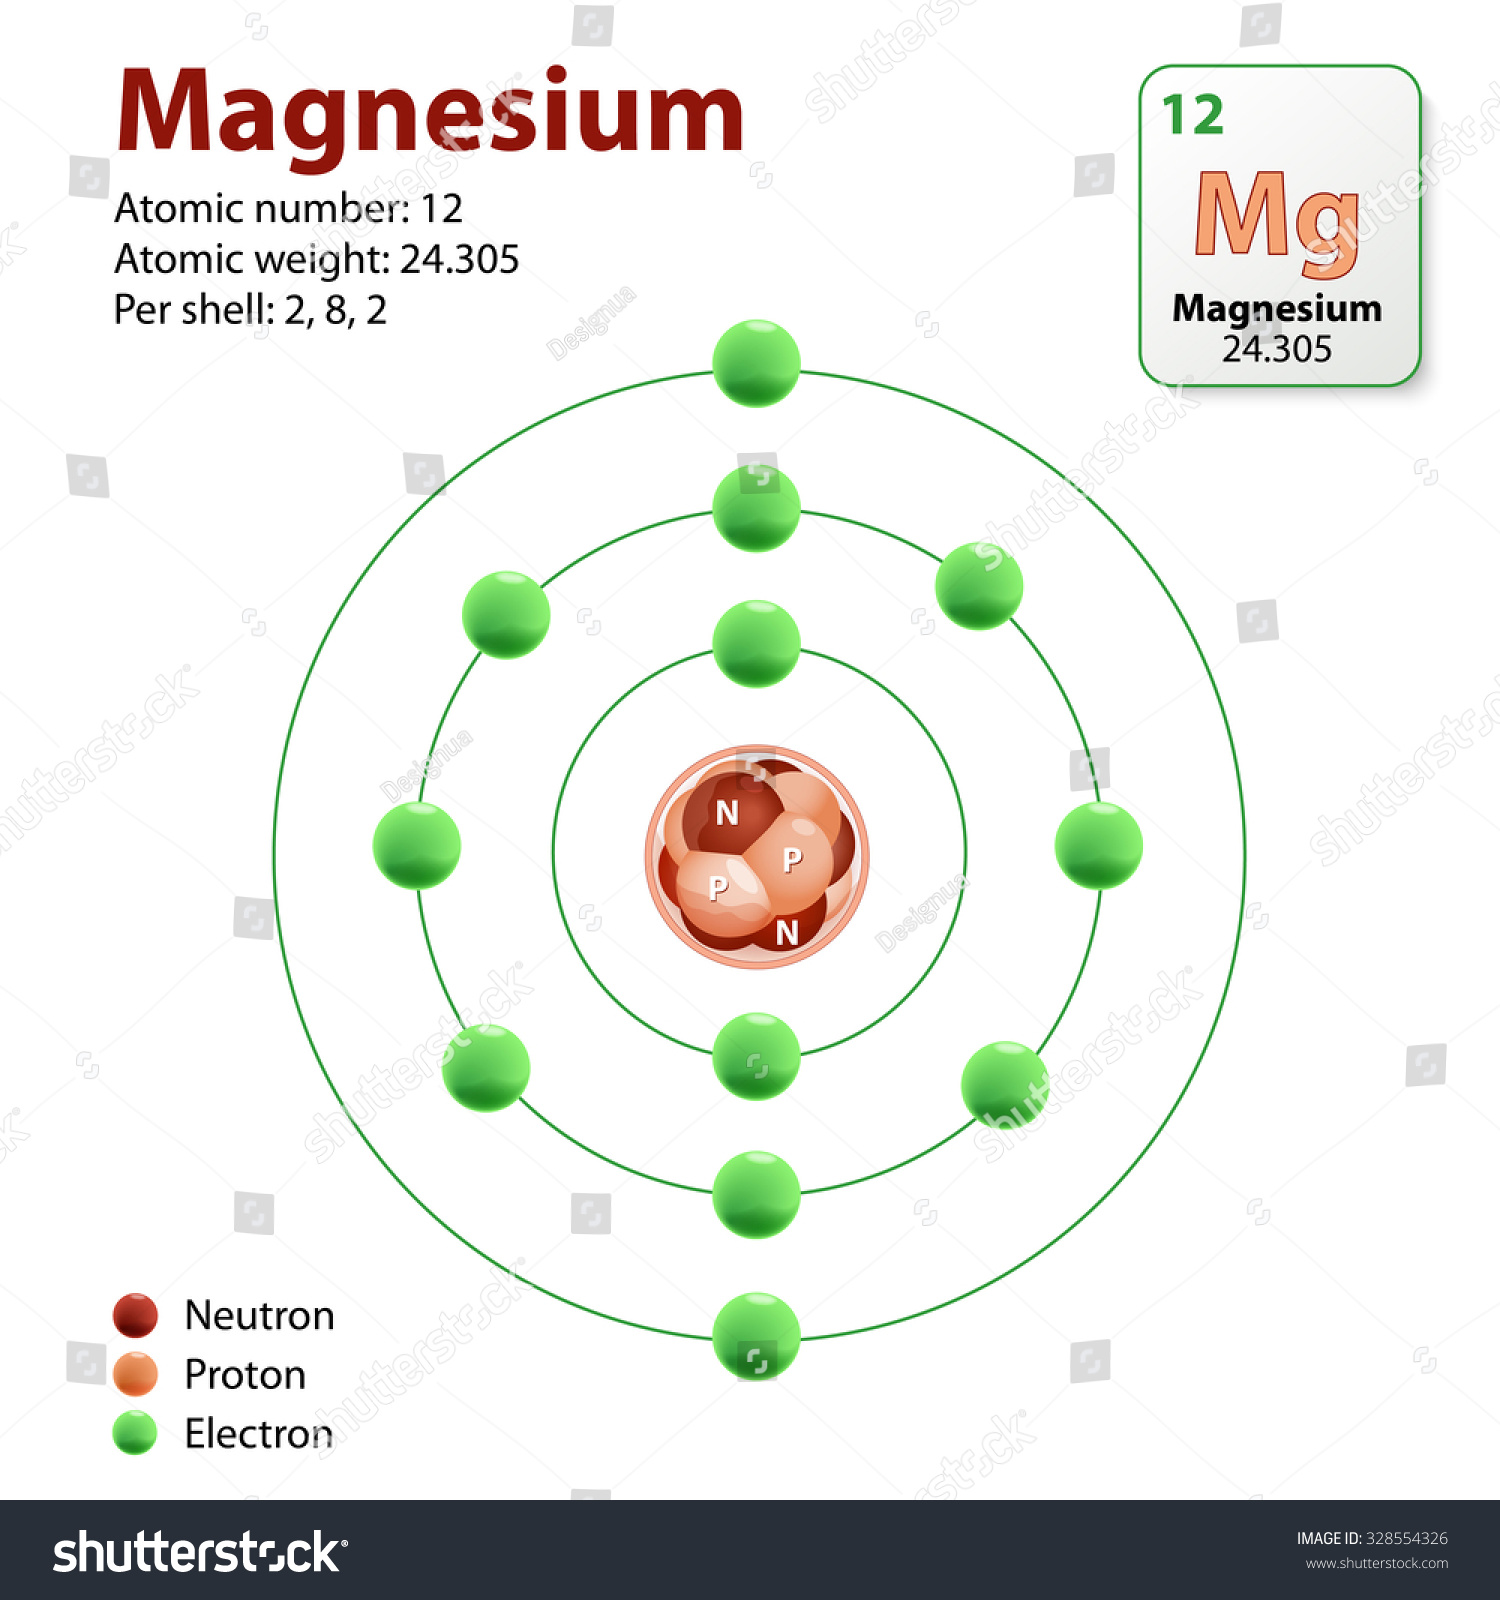 Magnesium Atom Diagram Representation Of The Element Magnesium Neutrons Protons And Electrons